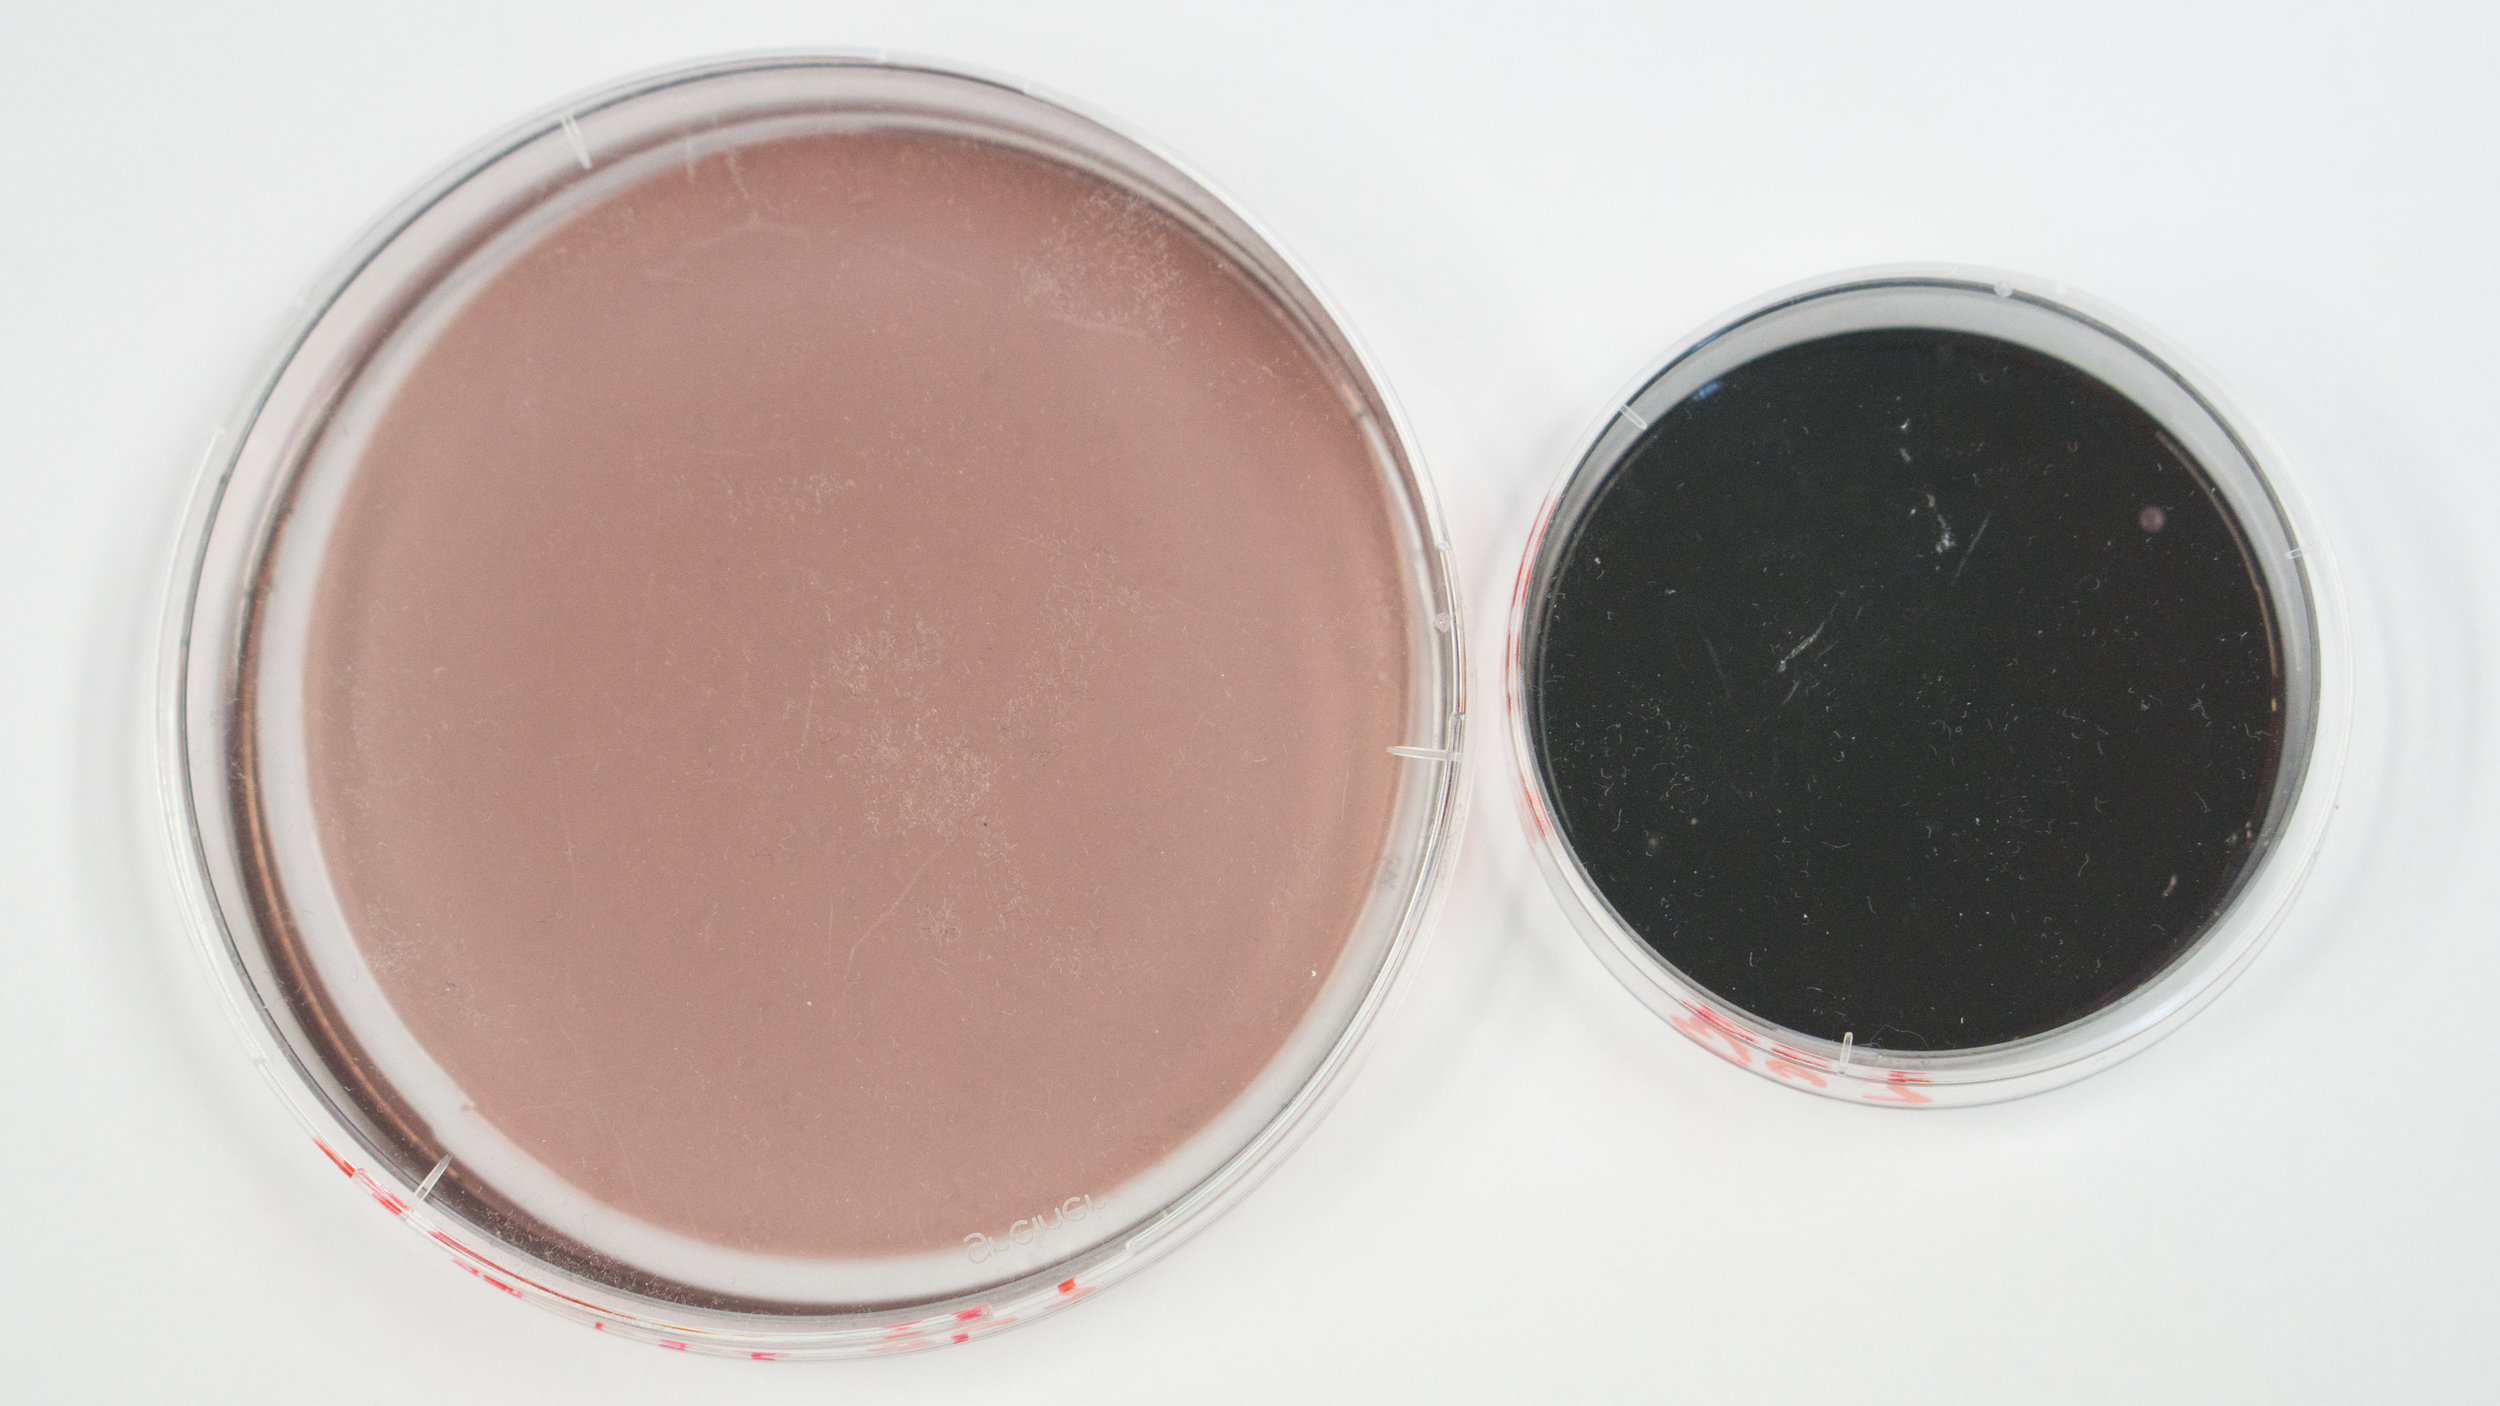 Agar plates pre-mixed with 0.03% (left) and 0.15% (right) dye concentration